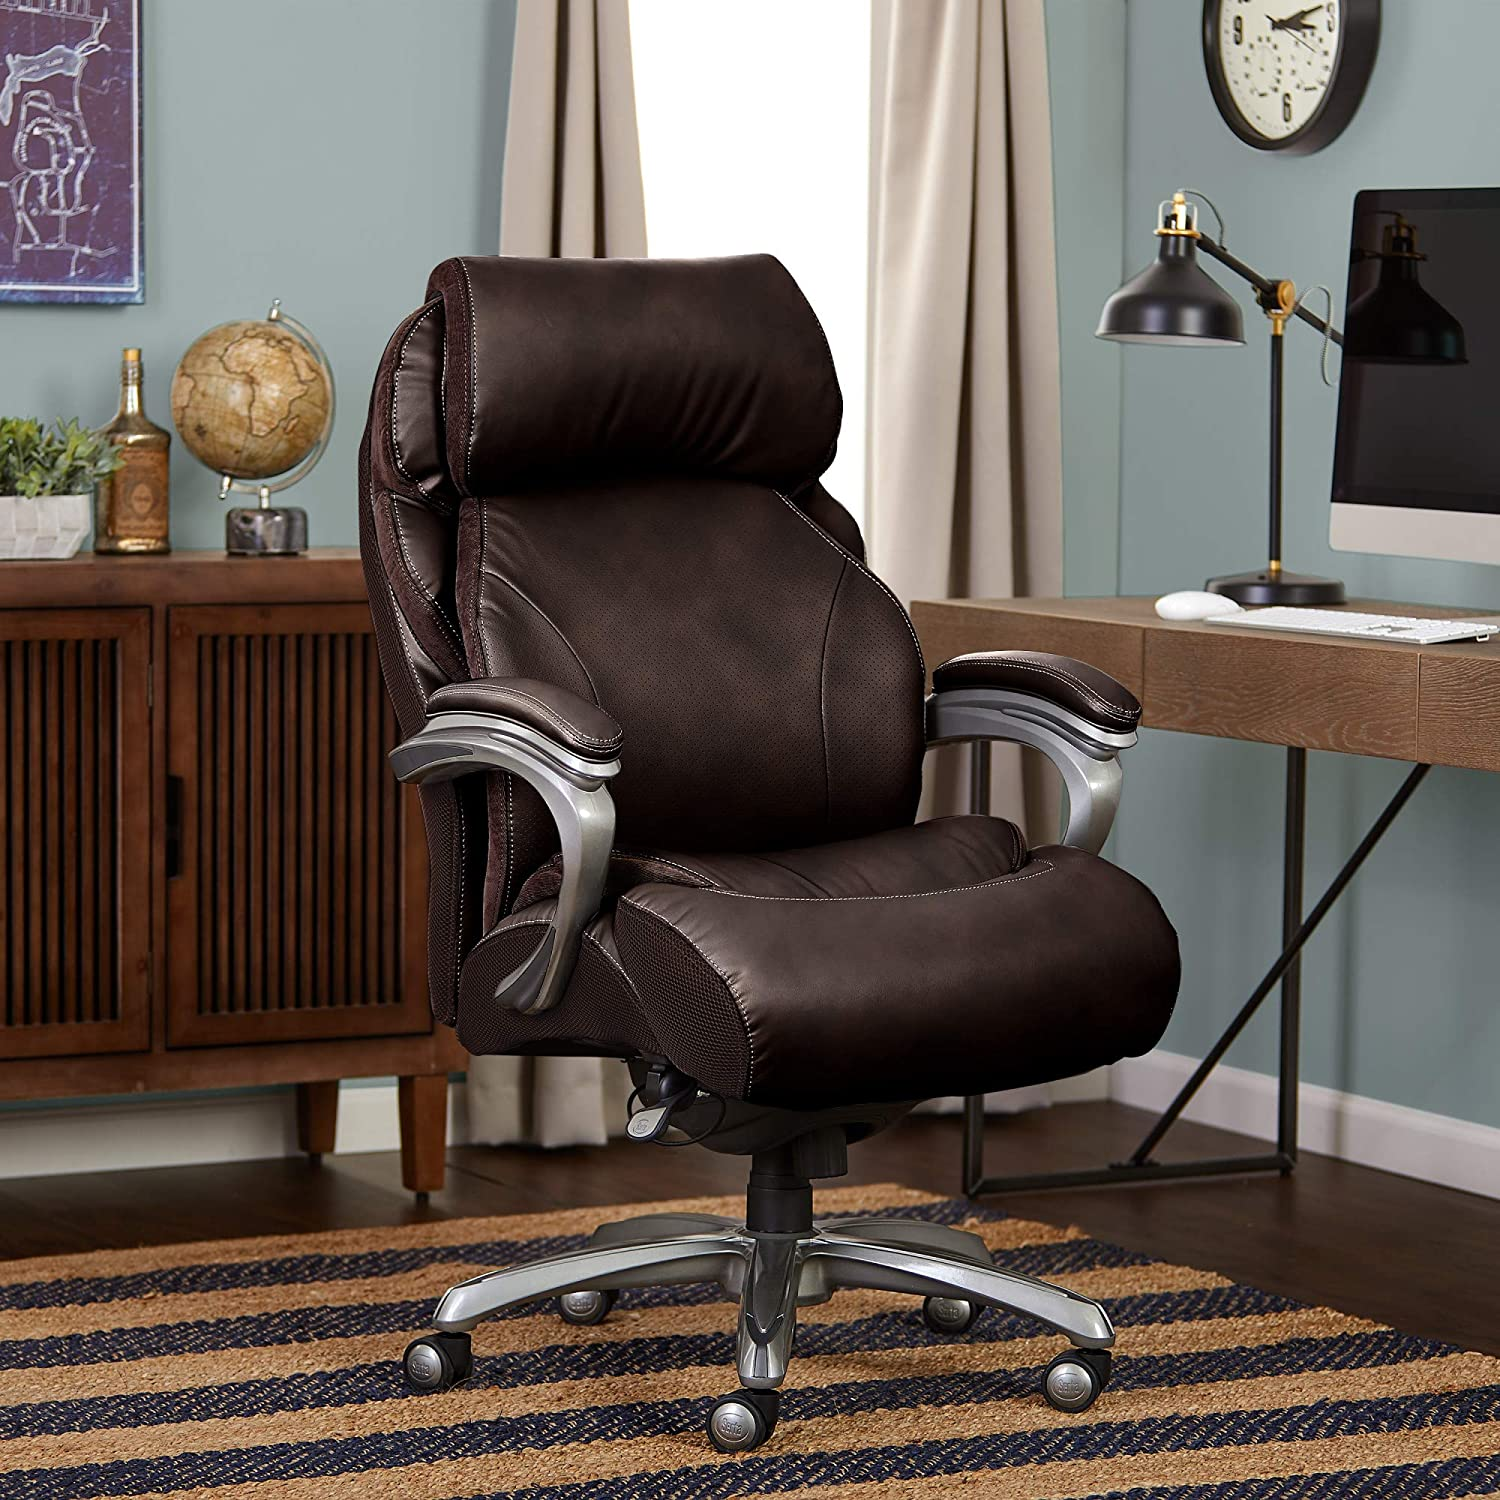 Amazon Com Serta Big And Tall Executive Office Chair With Air Technology And Smart Layers Premium Elite Foam Supports Up To 400 Pounds Bonded Leather Brown Furniture Decor